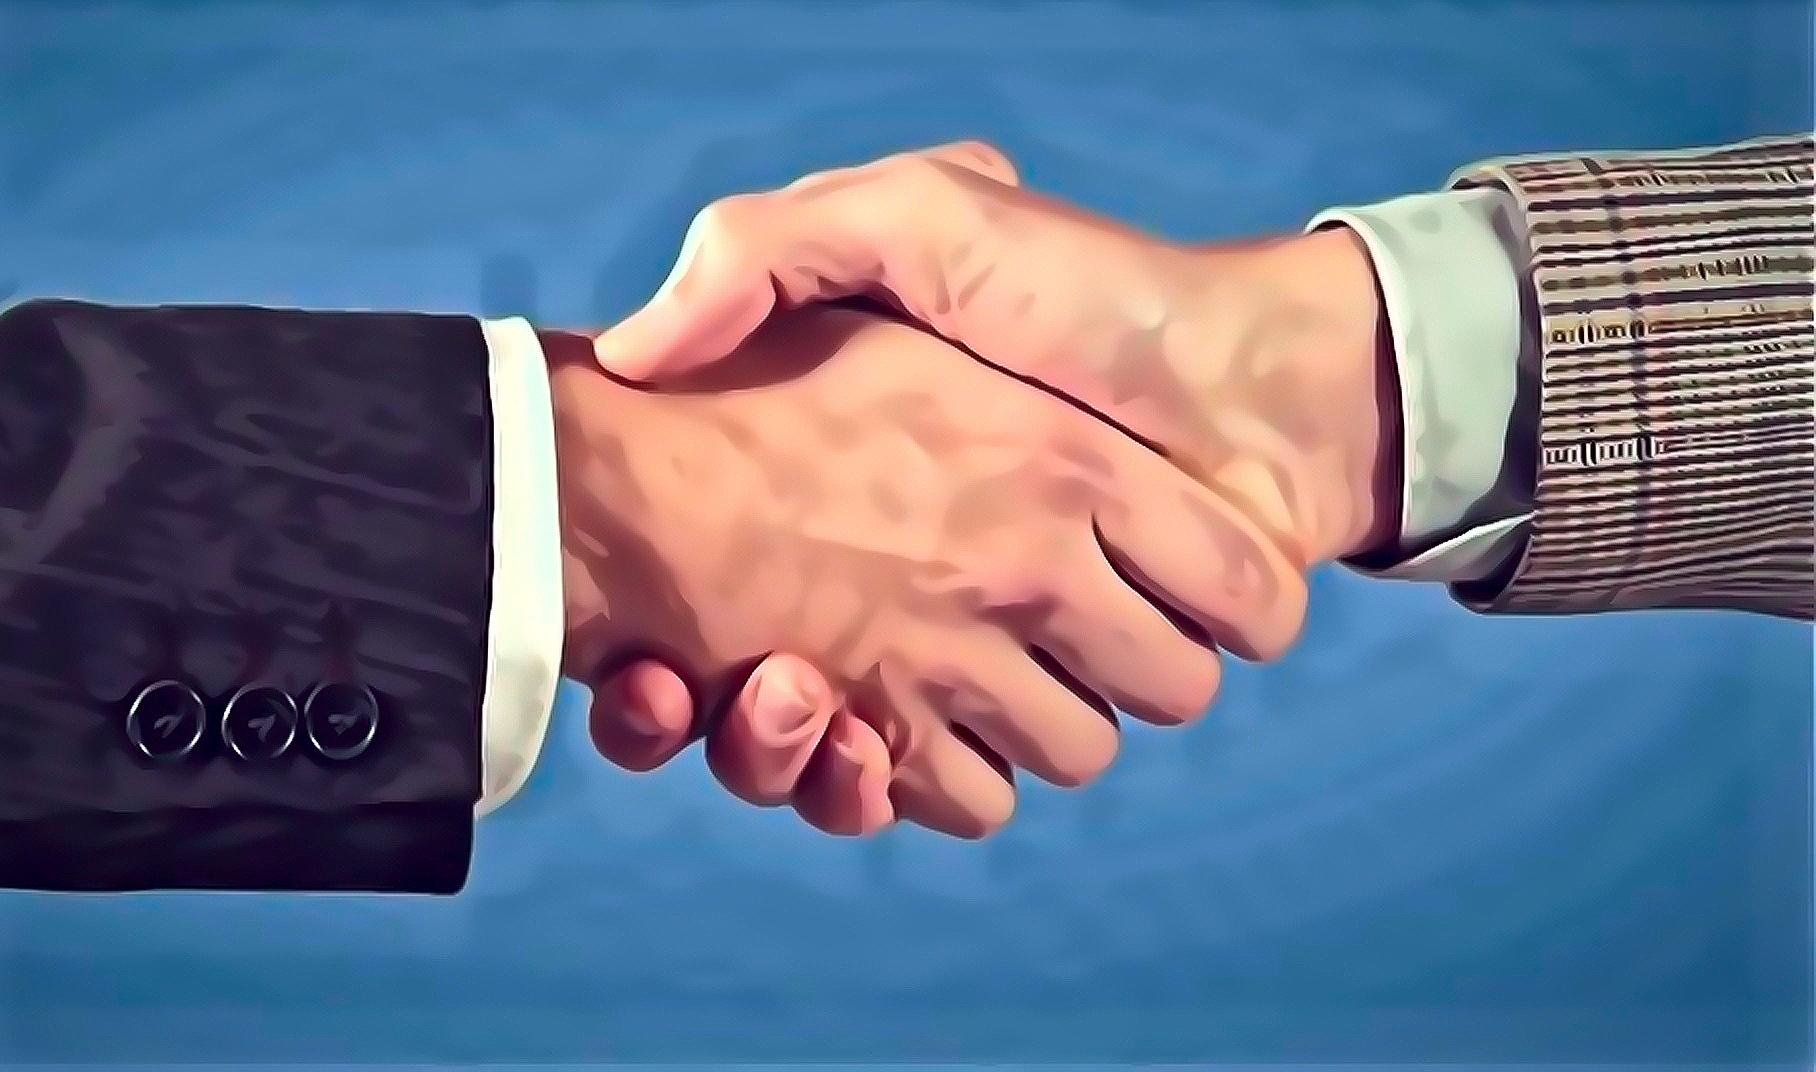 Shaking hands with your interviewer allows you to be sure you leave a good impression.